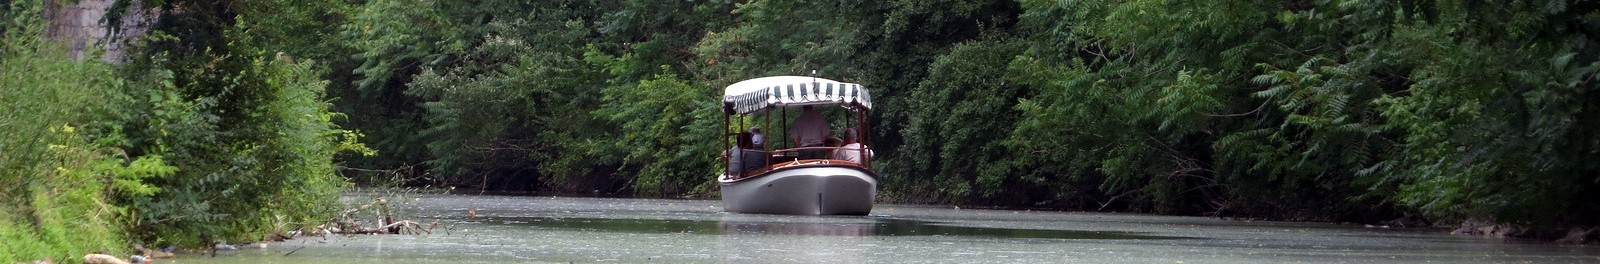 C&O Canal electric launch boat